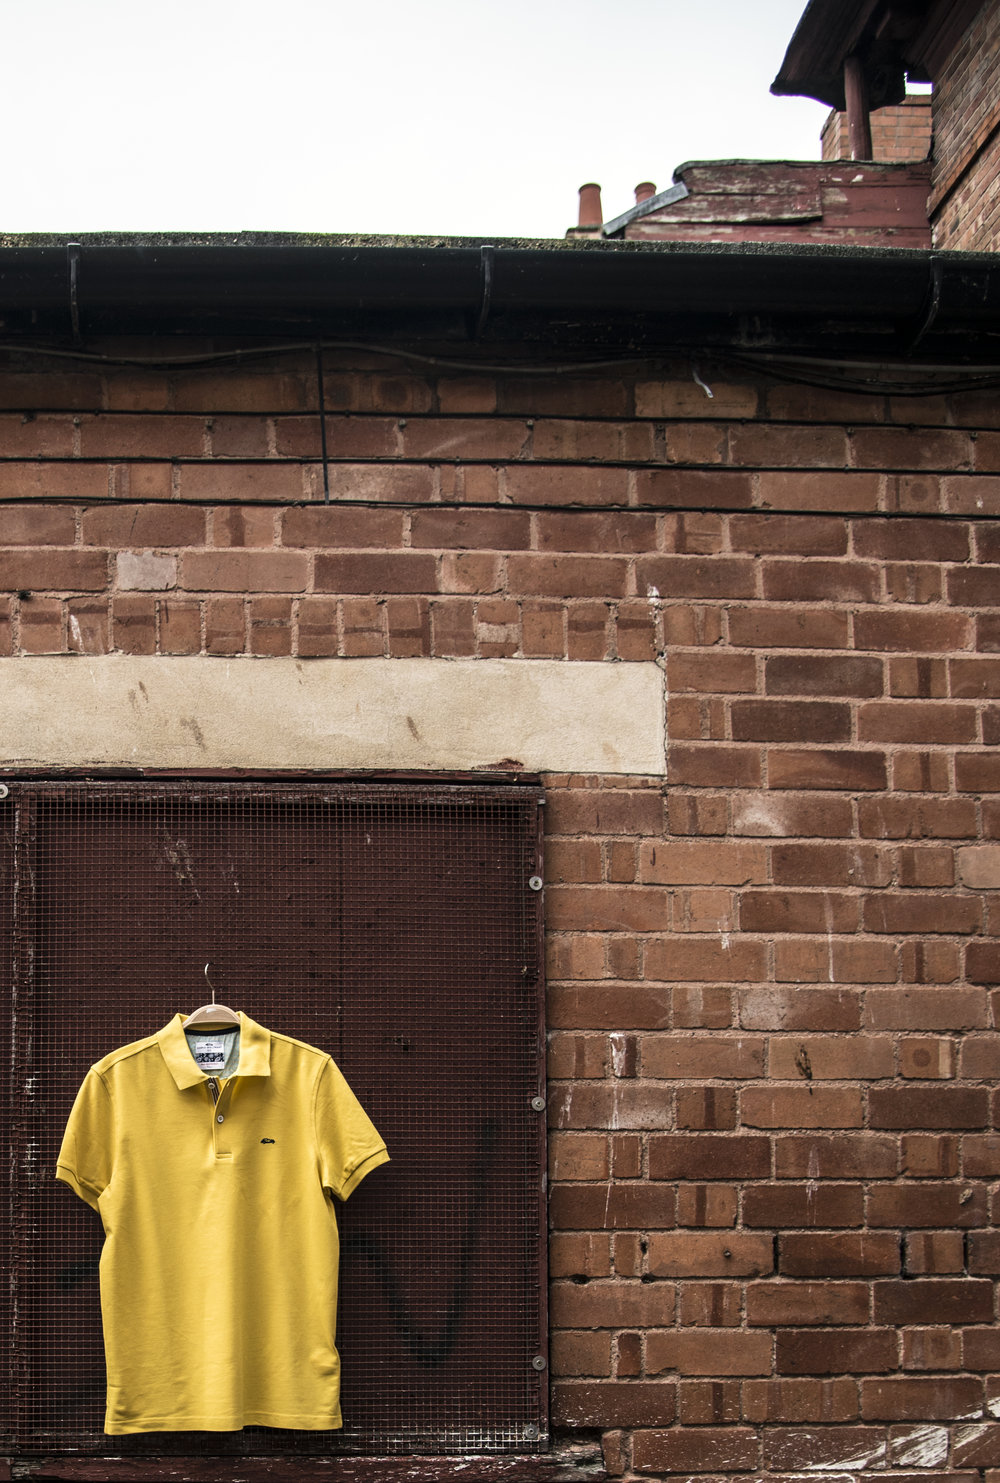 Yellow polo shirt hanging off wall in Hereford.jpg